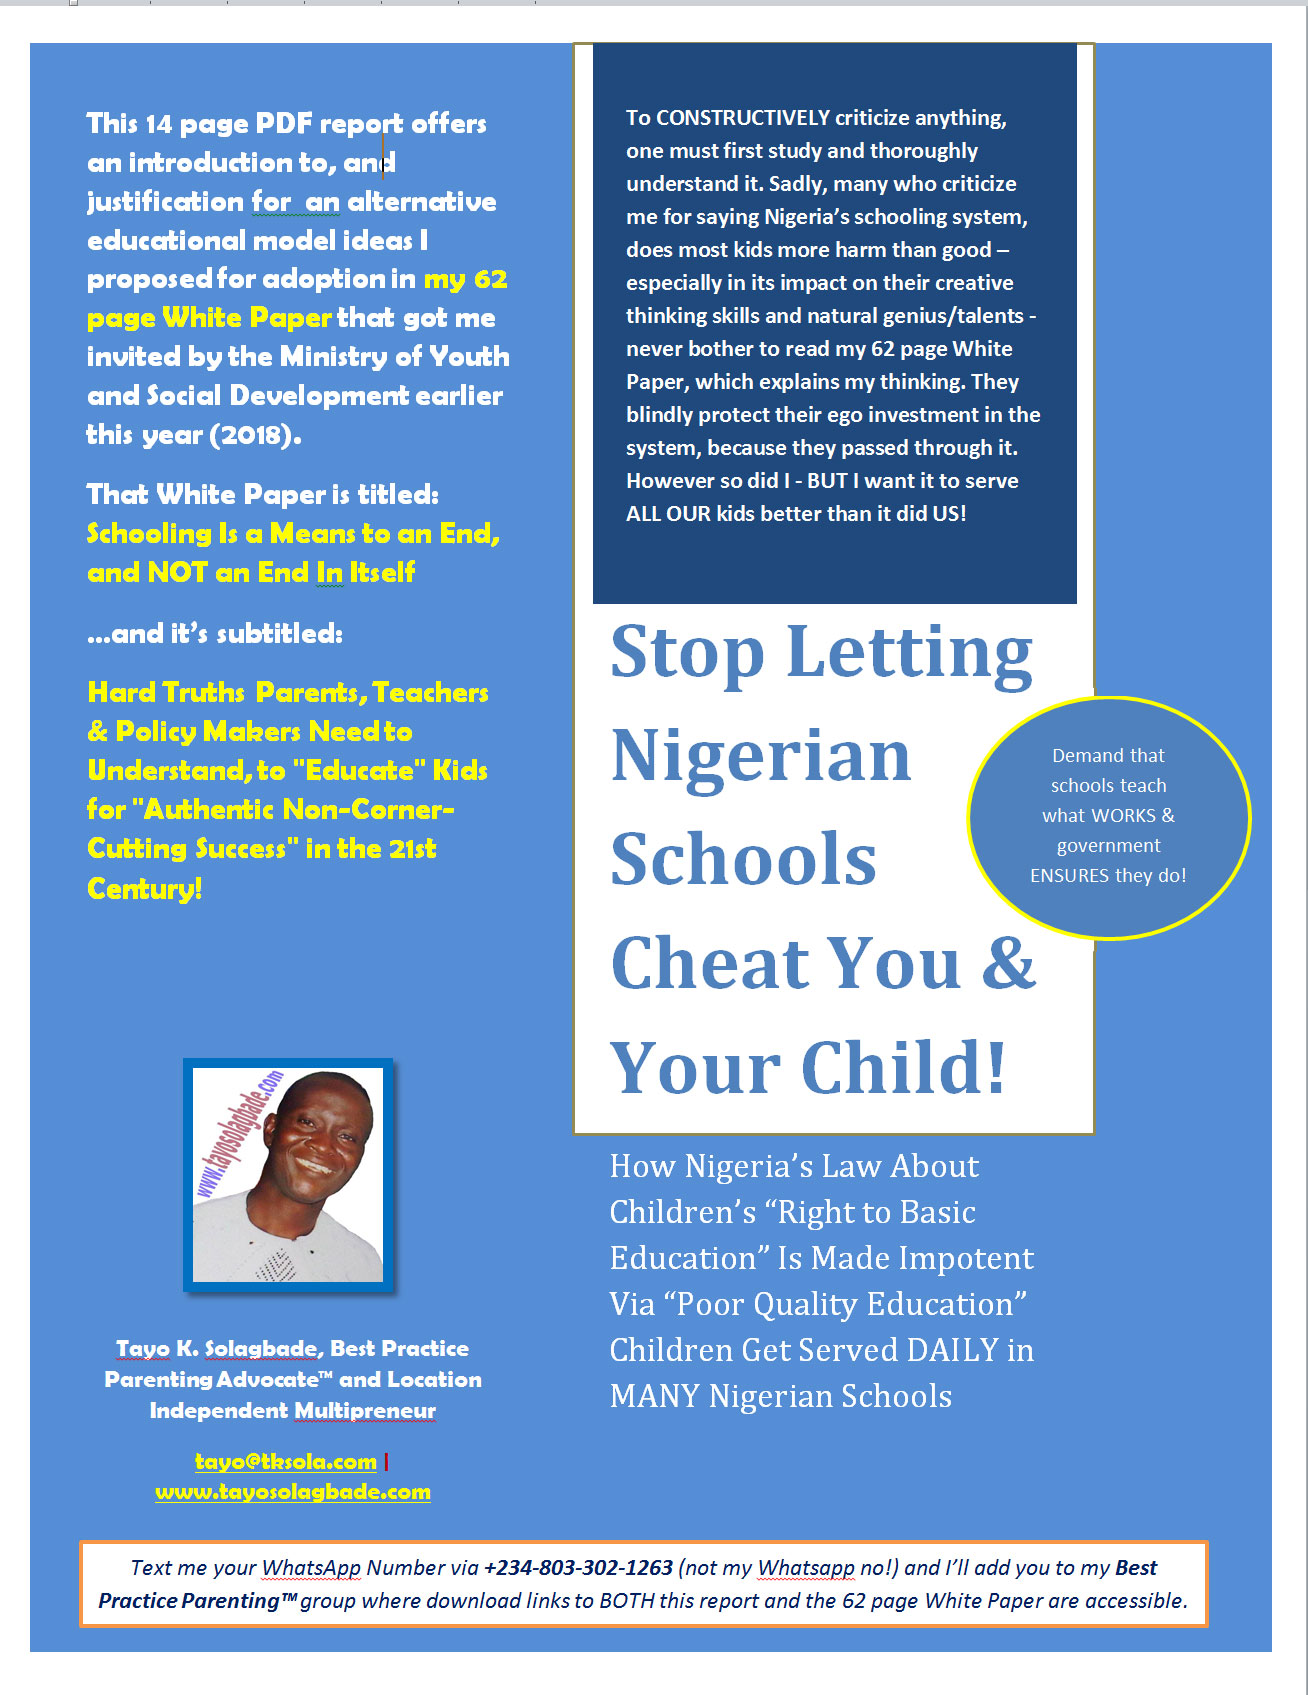 bpp-stop-letting-schools-ch